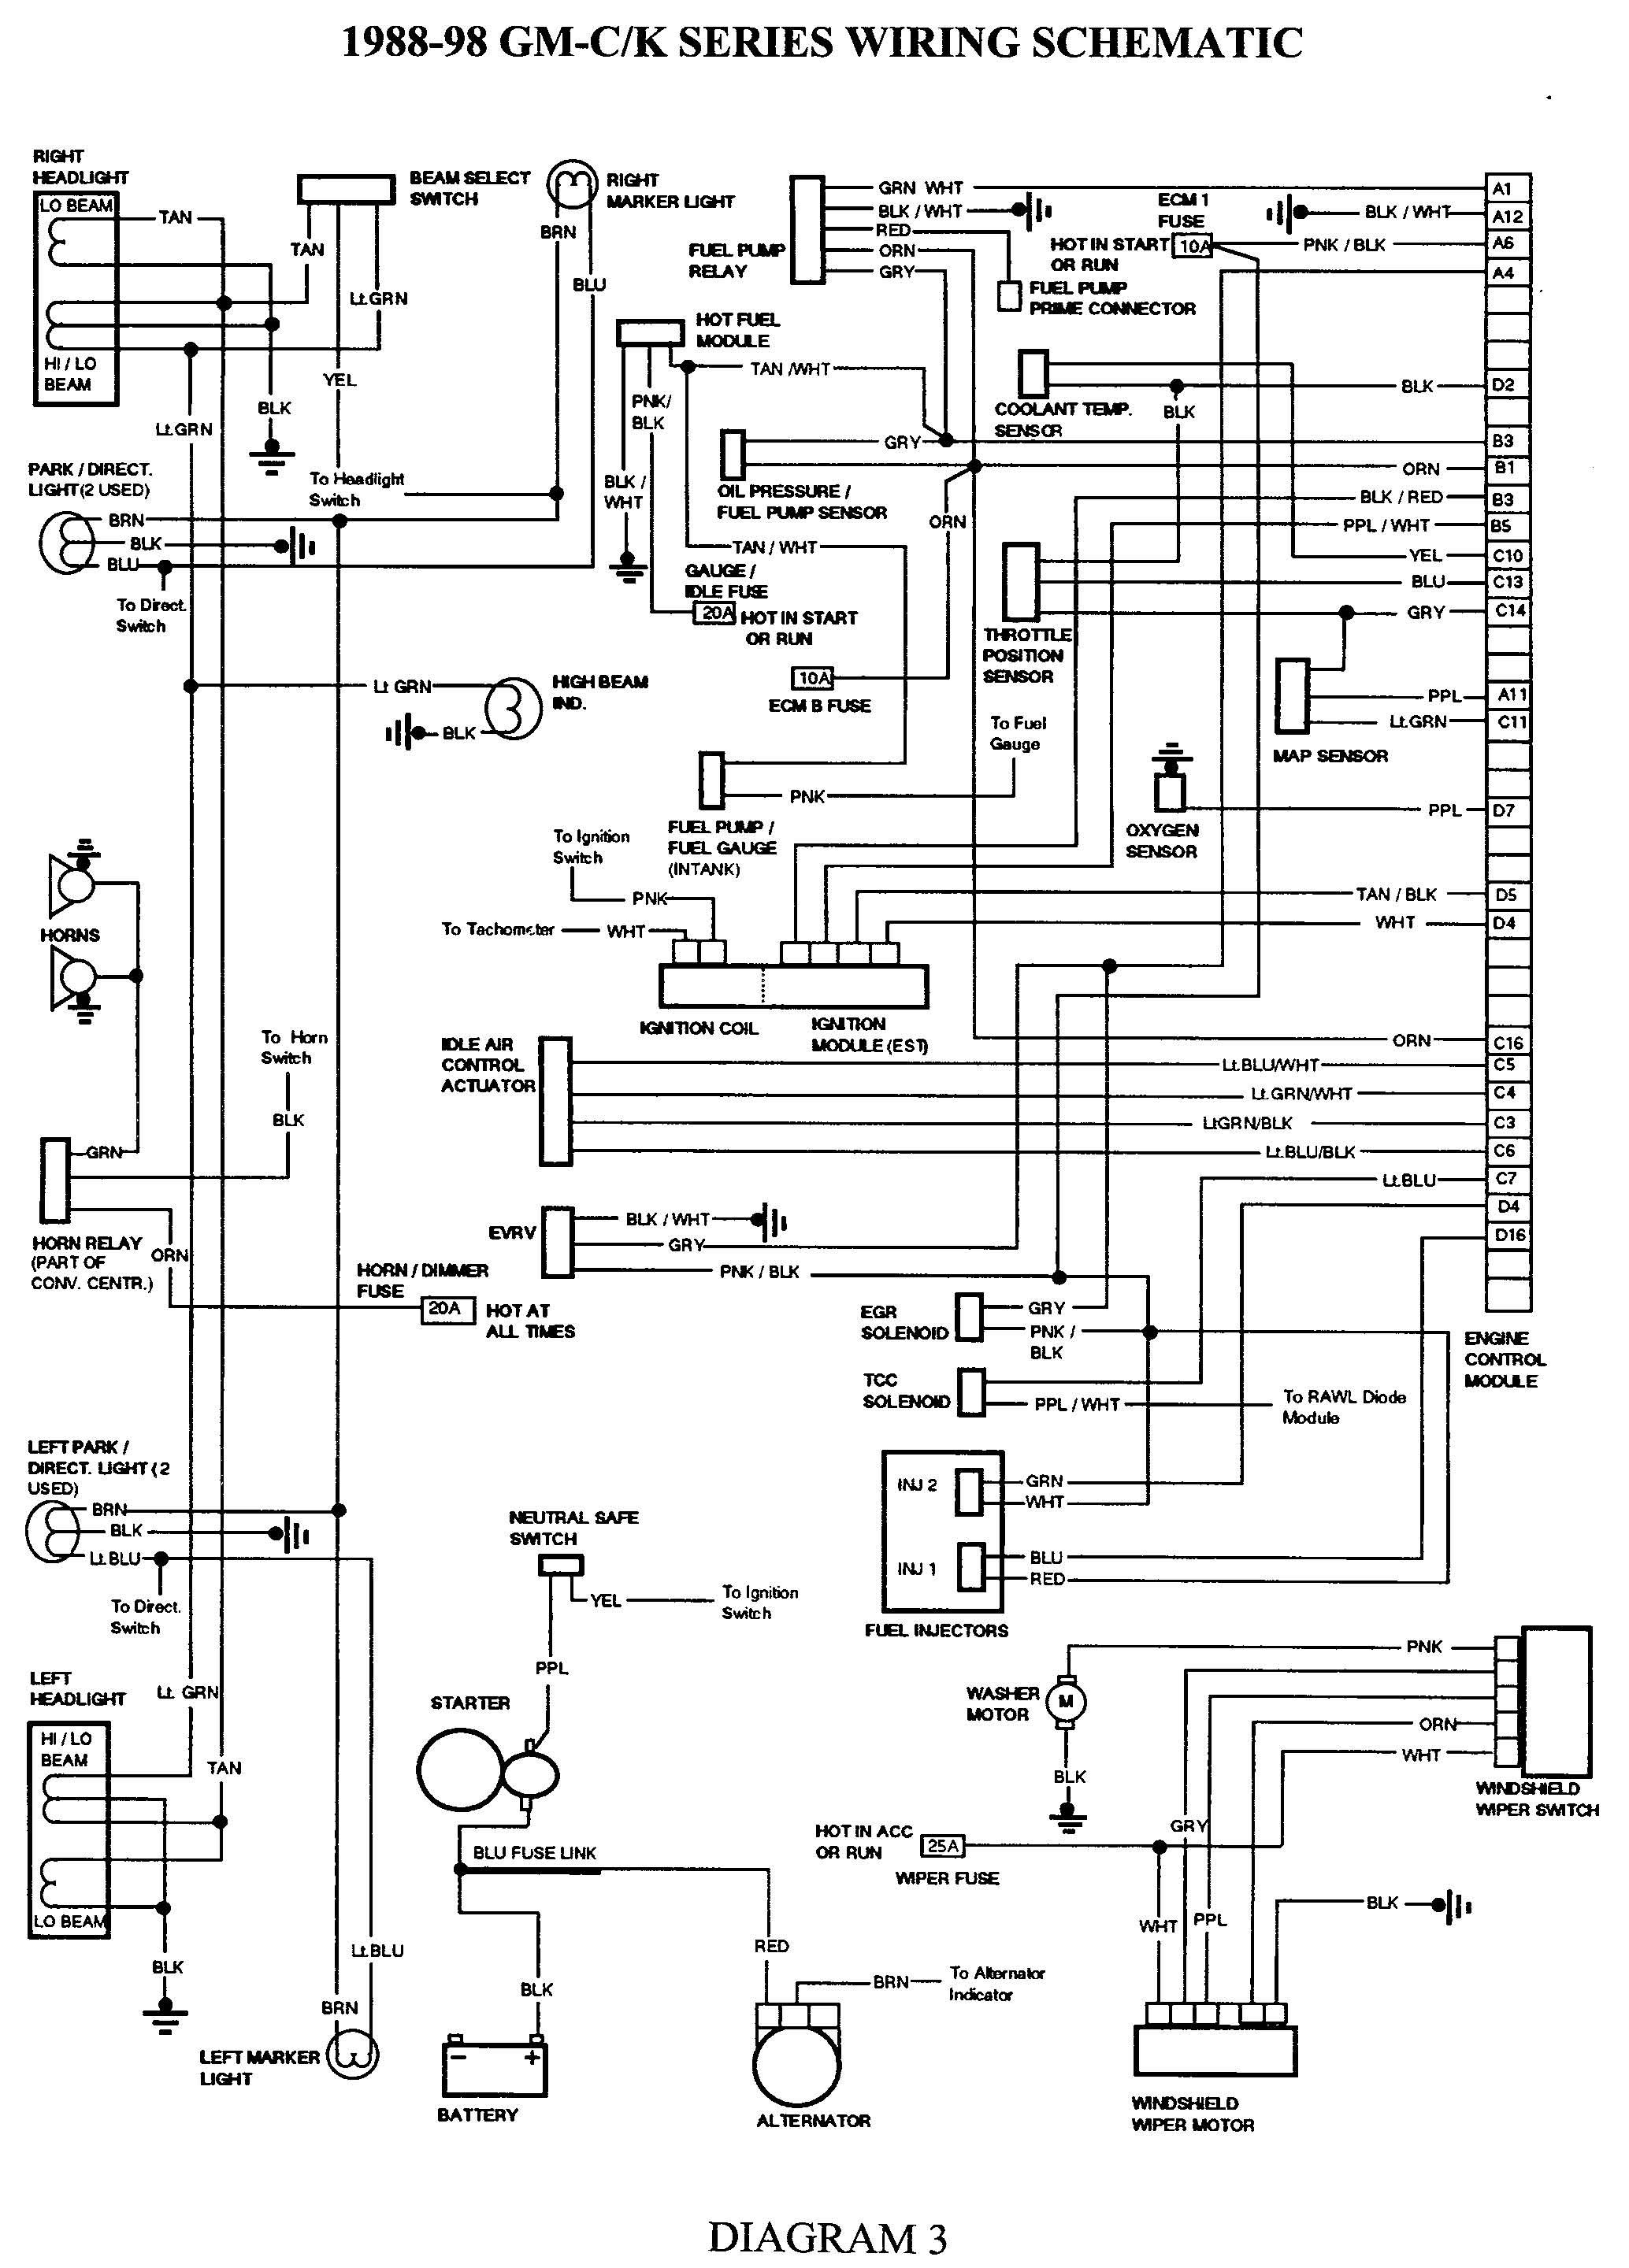 2012 gmc wiring diagram wiring diagram schematics international 4700 dt466e diagram 1989 international wiring diagram [ 2068 x 2880 Pixel ]